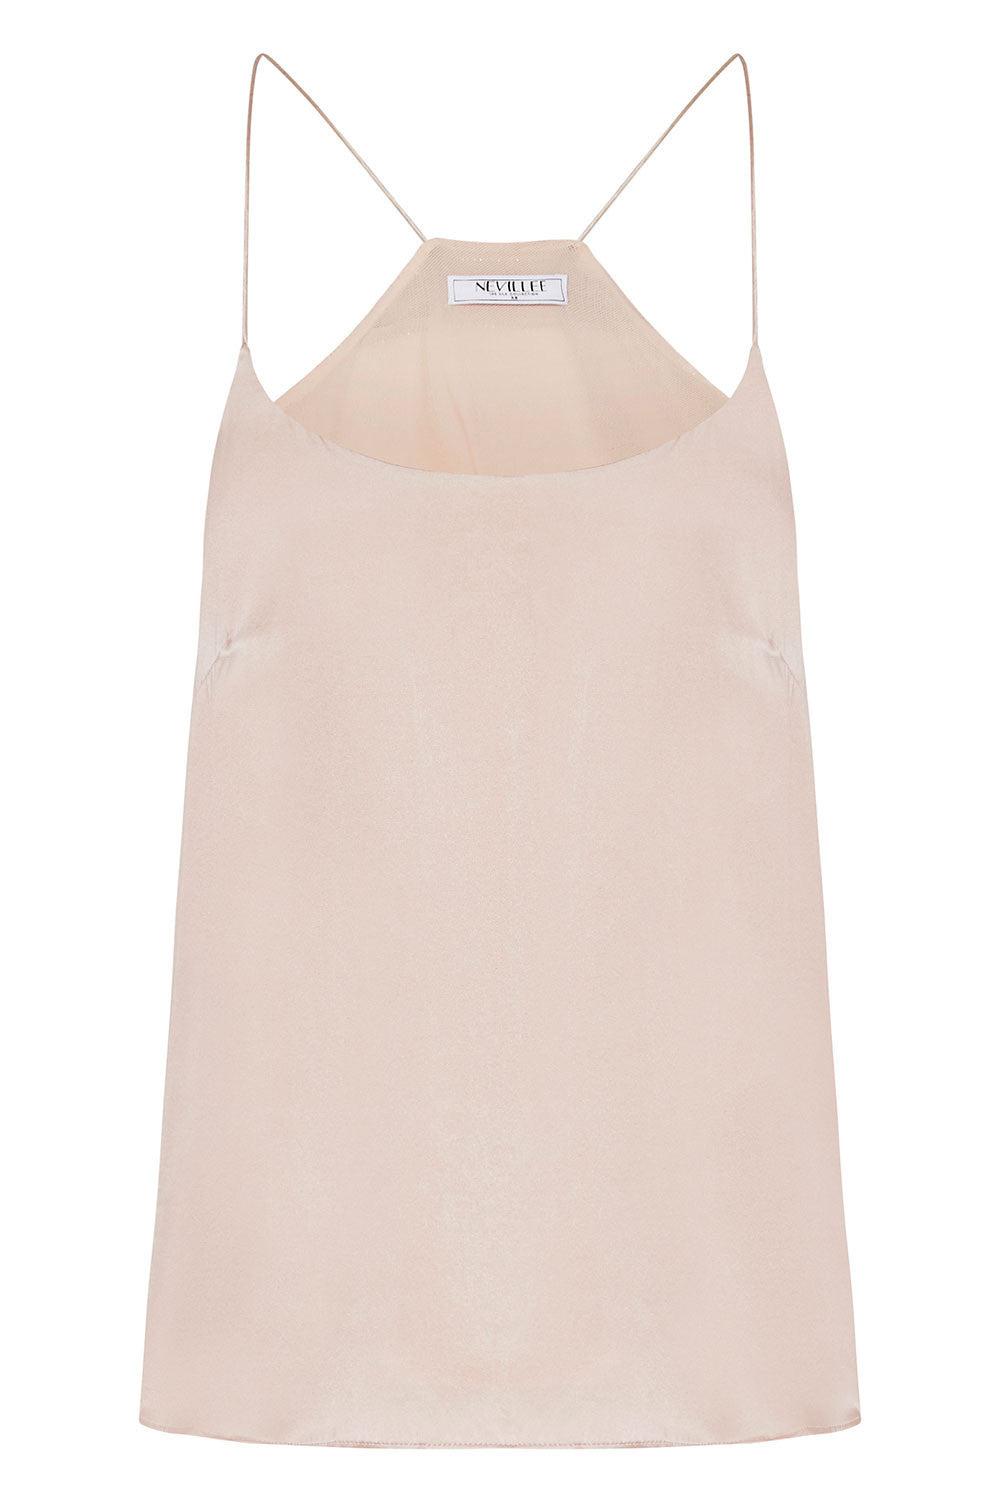 THE OFF DUTY CAMISOLE - BLUSH PINK